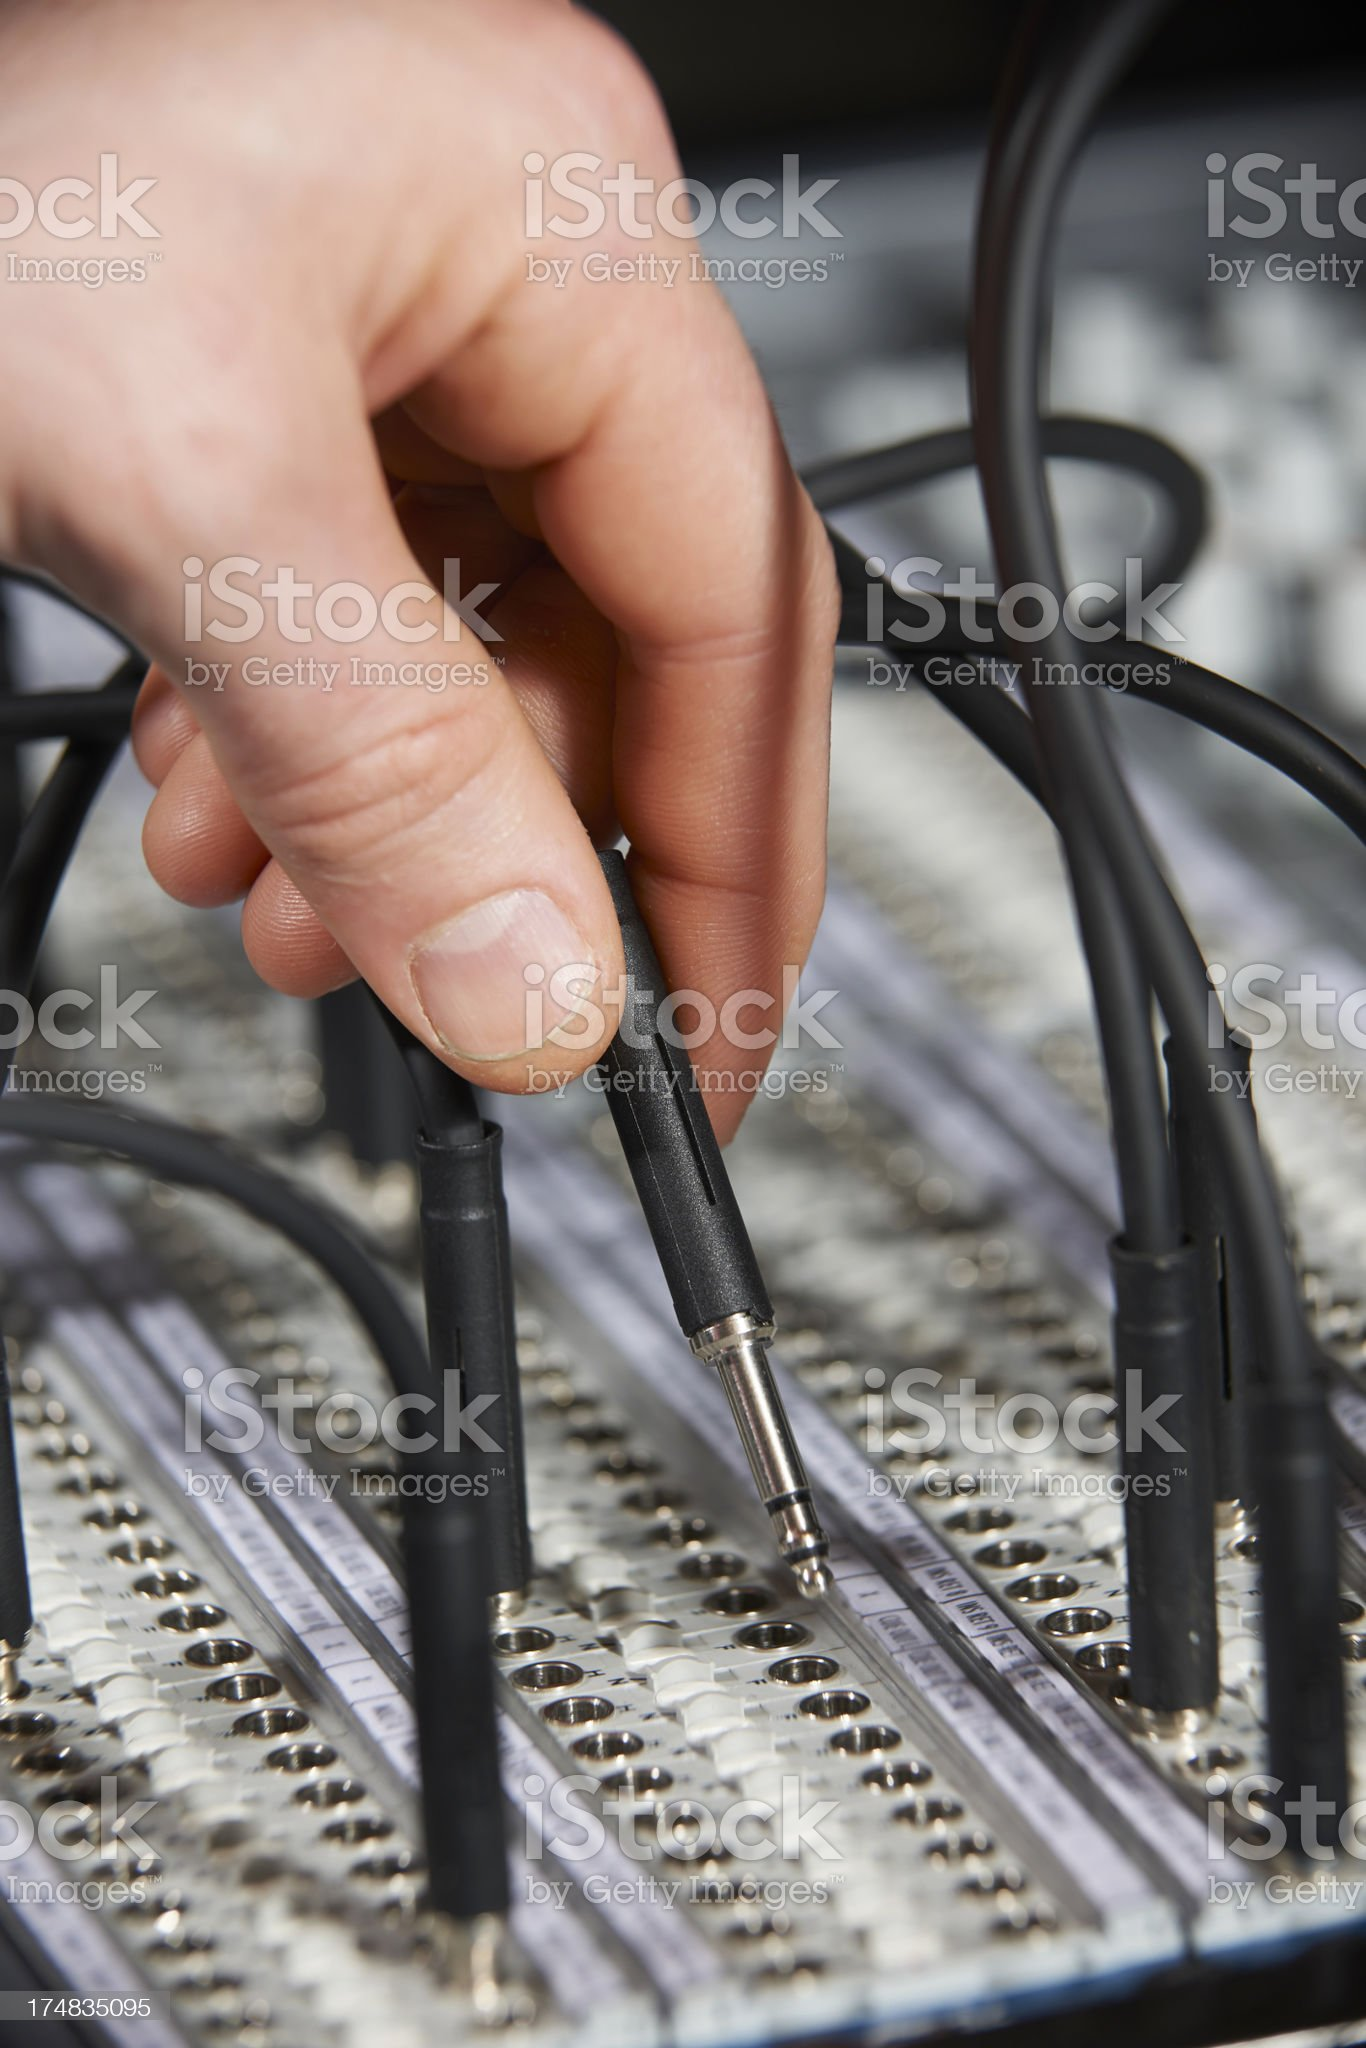 Engineer Plugging Cable Into Patch Panel royalty-free stock photo